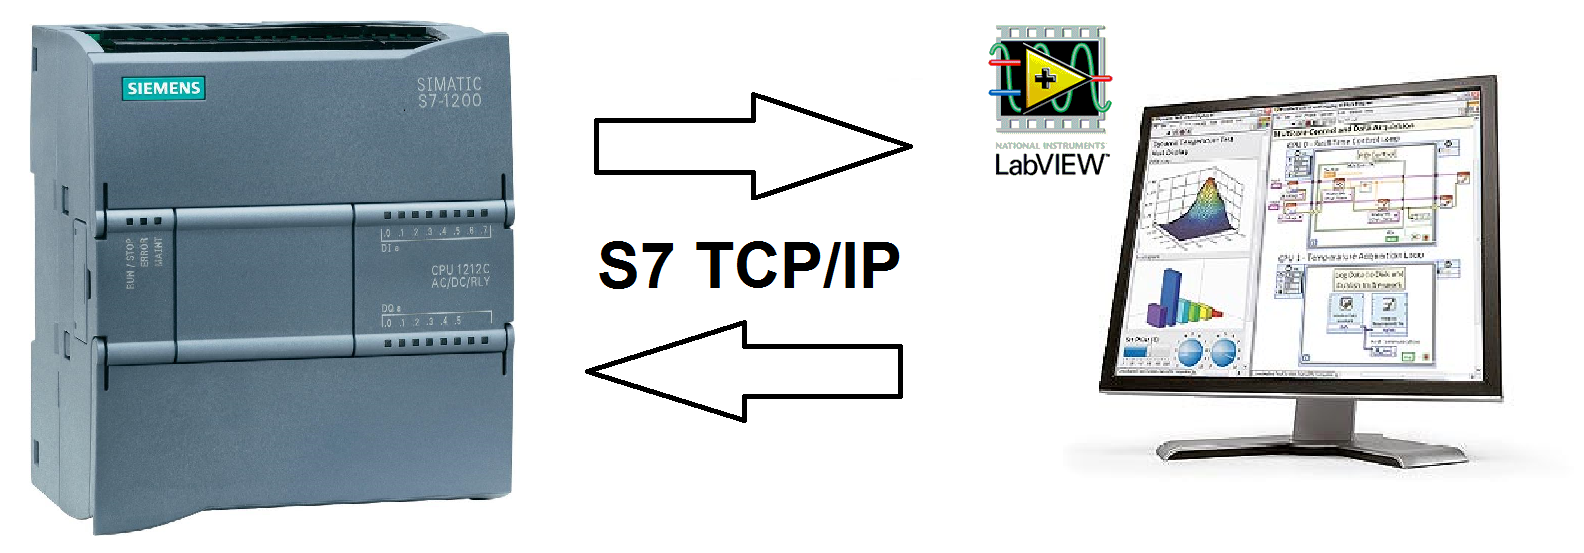 Requirements for datalogging from a Siemens S7 PLC to LabVIEW.